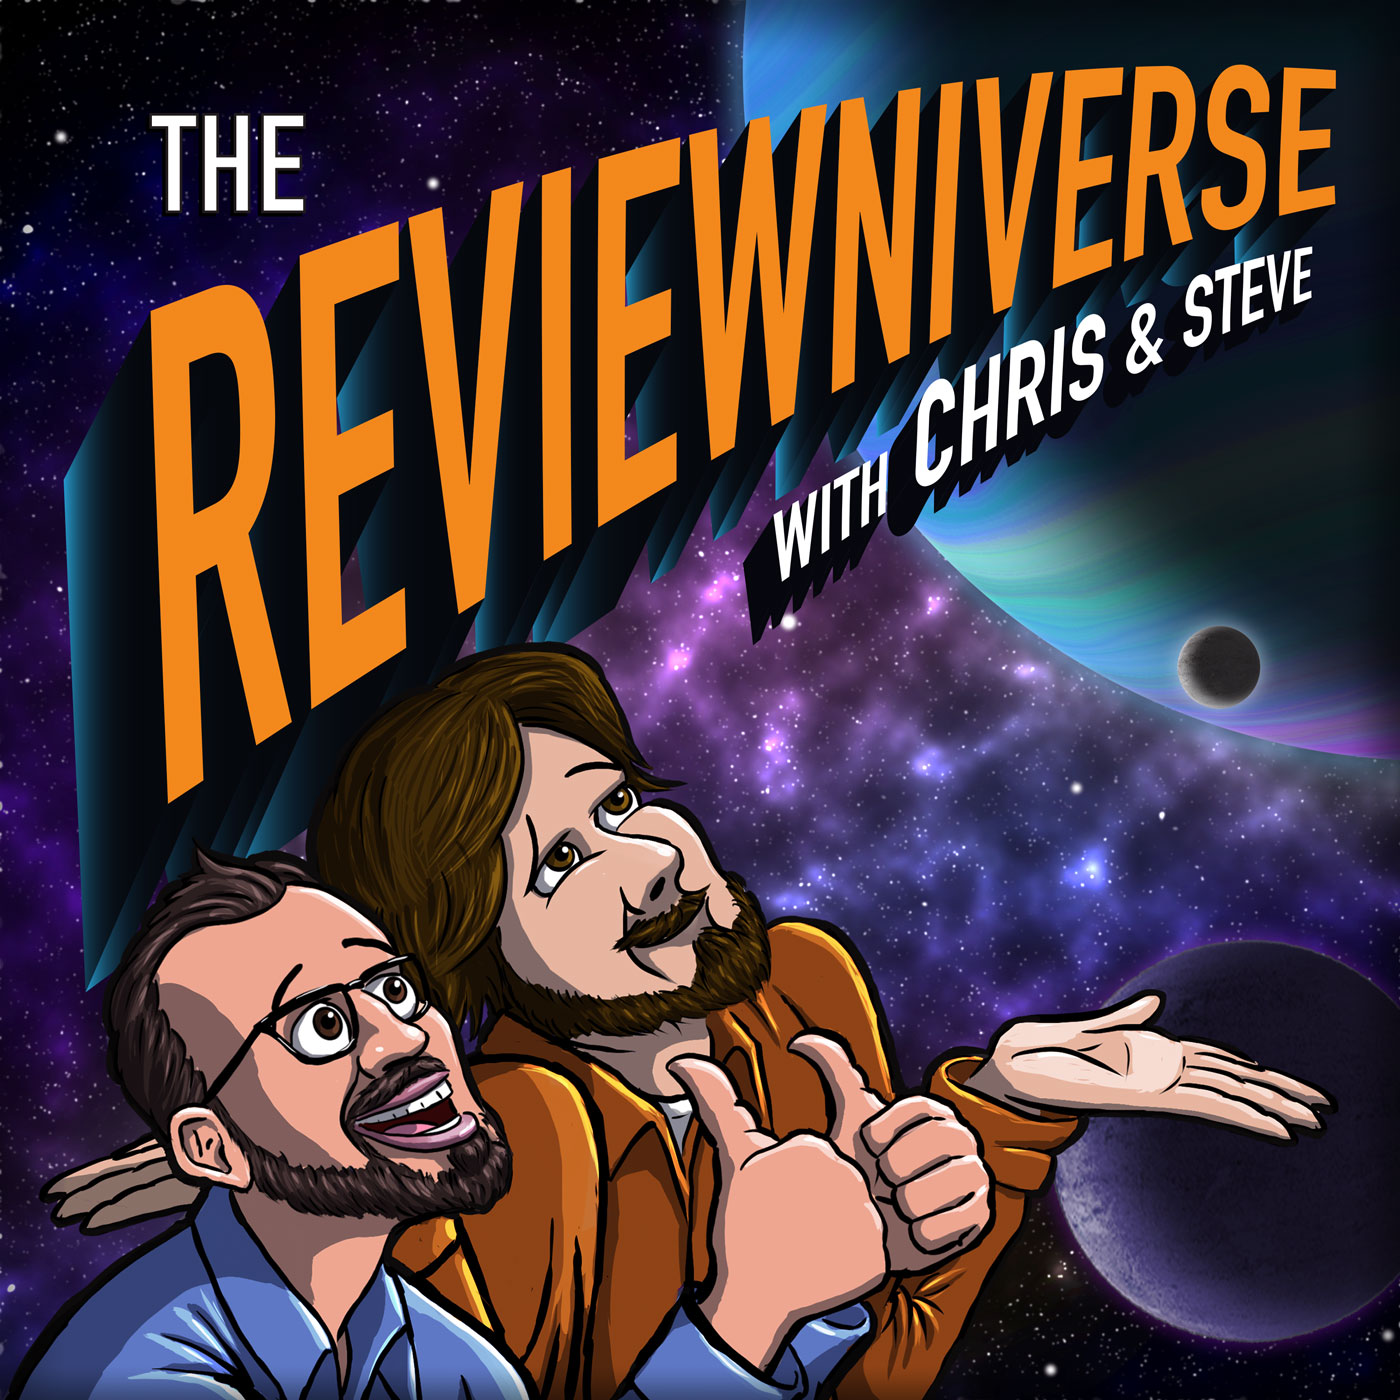 The Reviewniverse with Chris and Steve show art